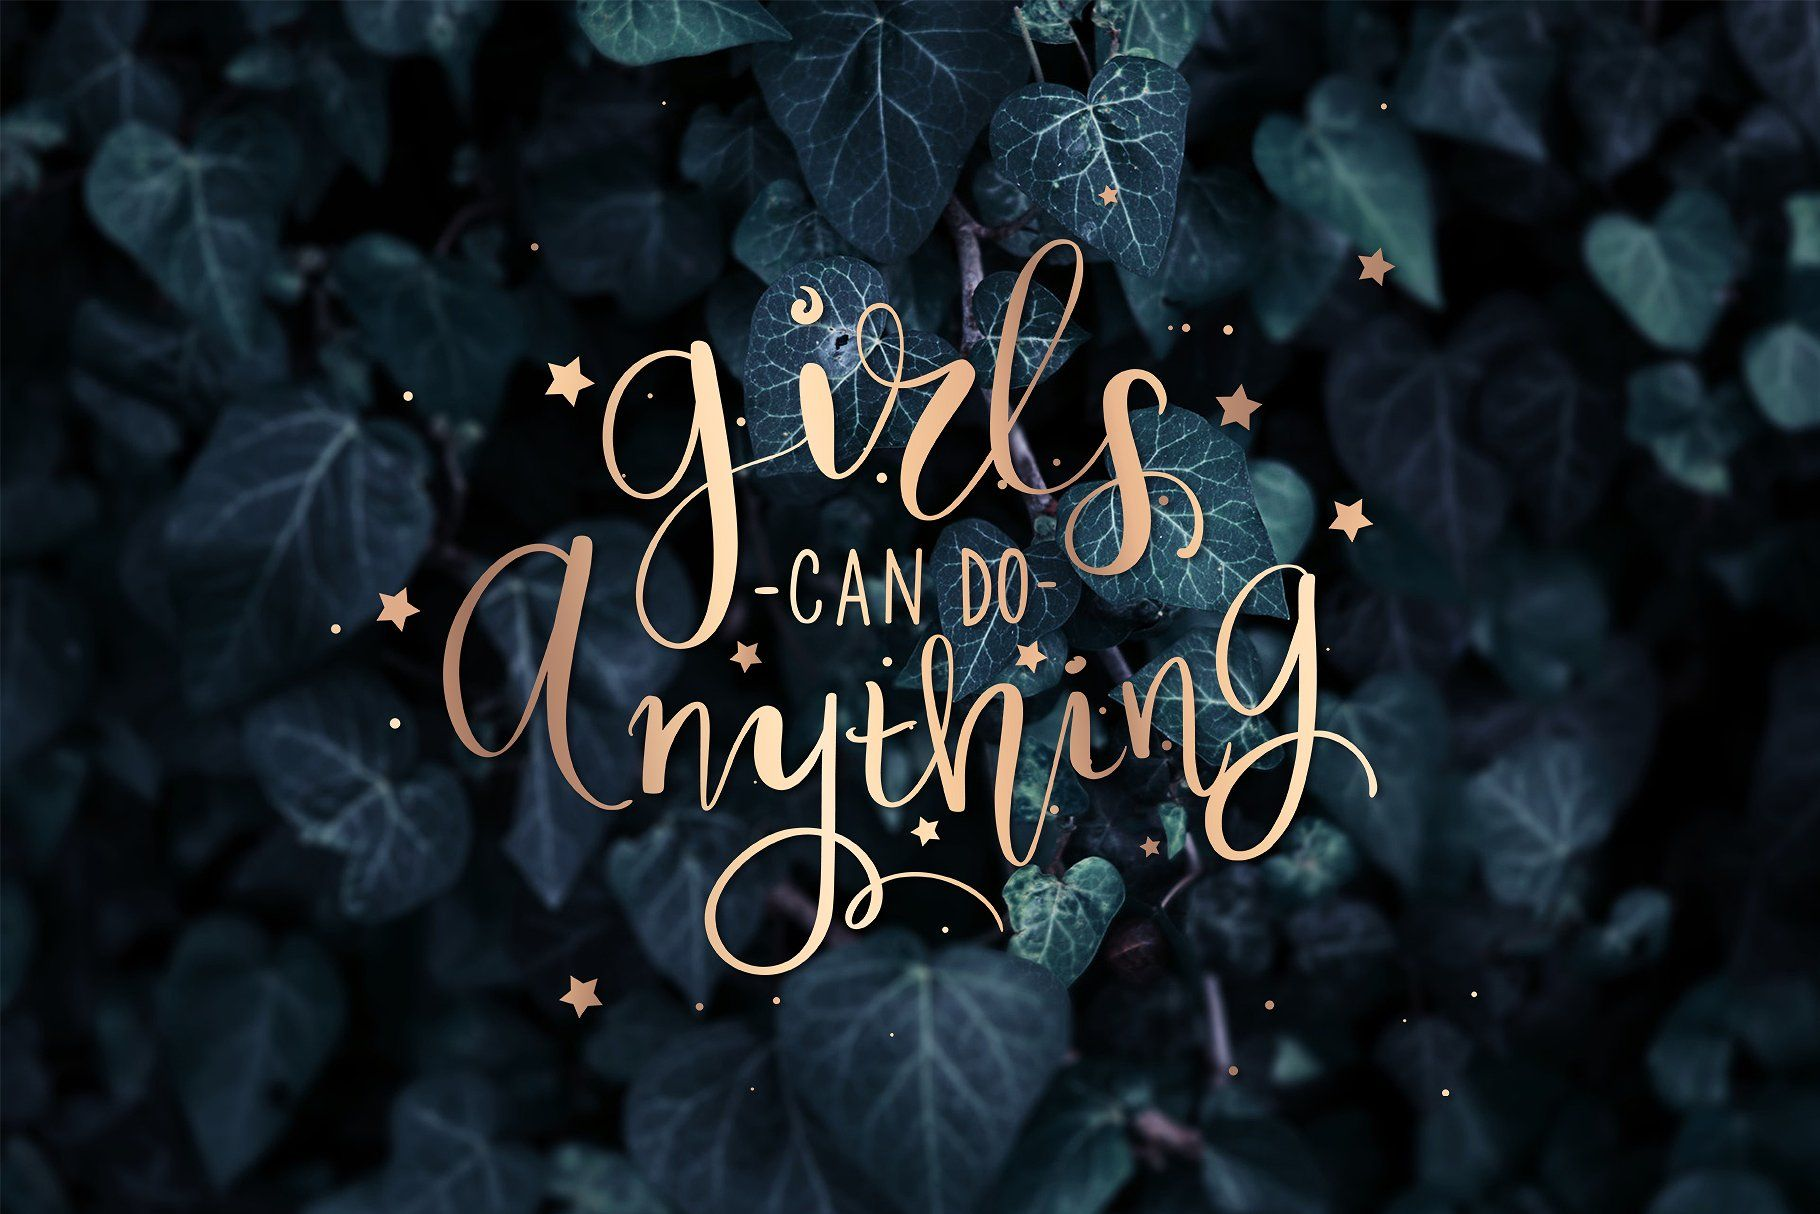 Positive Quotes Cute Phrases Laptop Wallpaper Quotes Cute Desktop Wallpaper Wallpaper Notebook